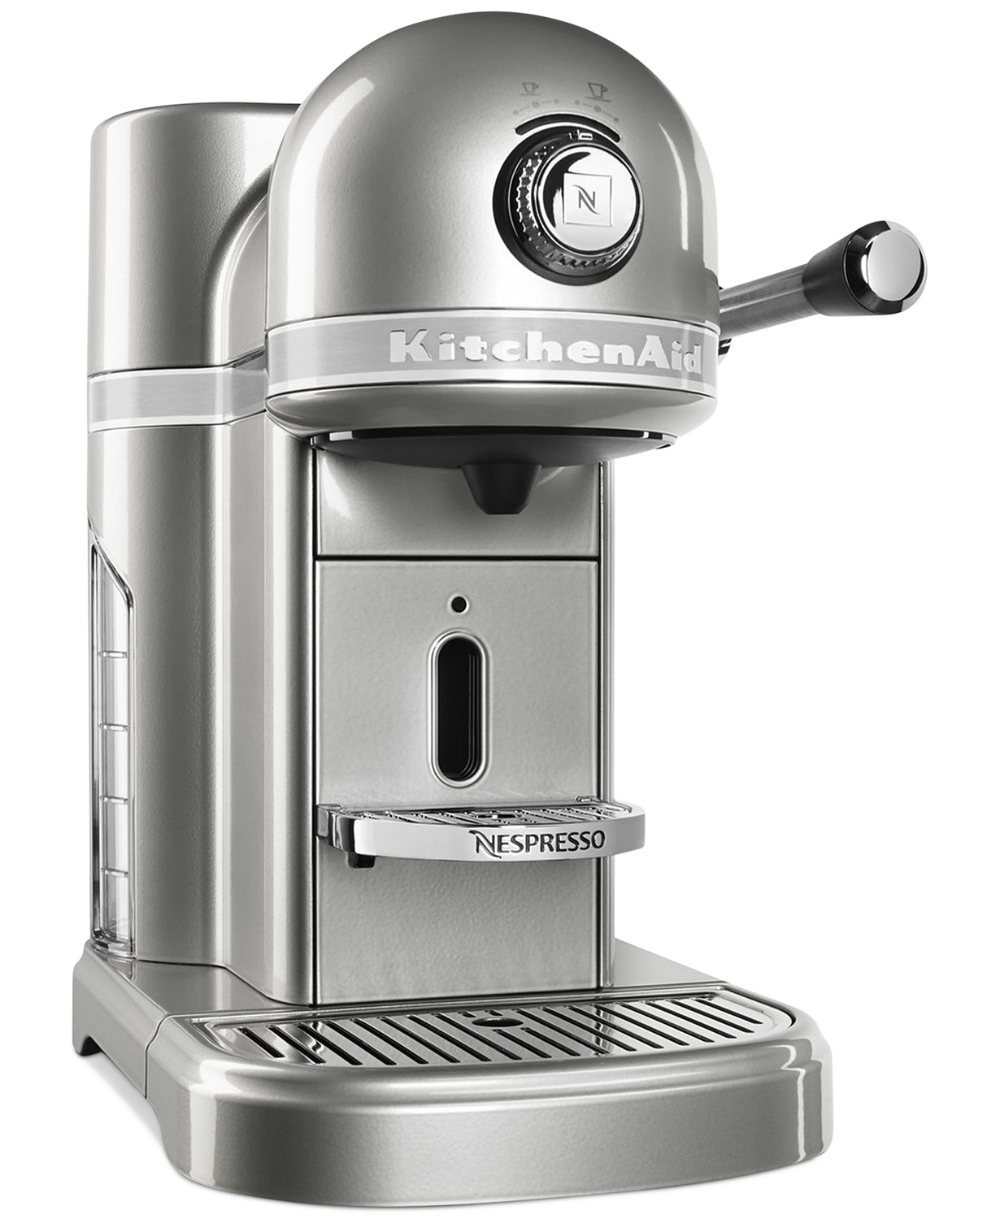 KitchenAid Nespresso Espresso Maker KES0503 & Reviews